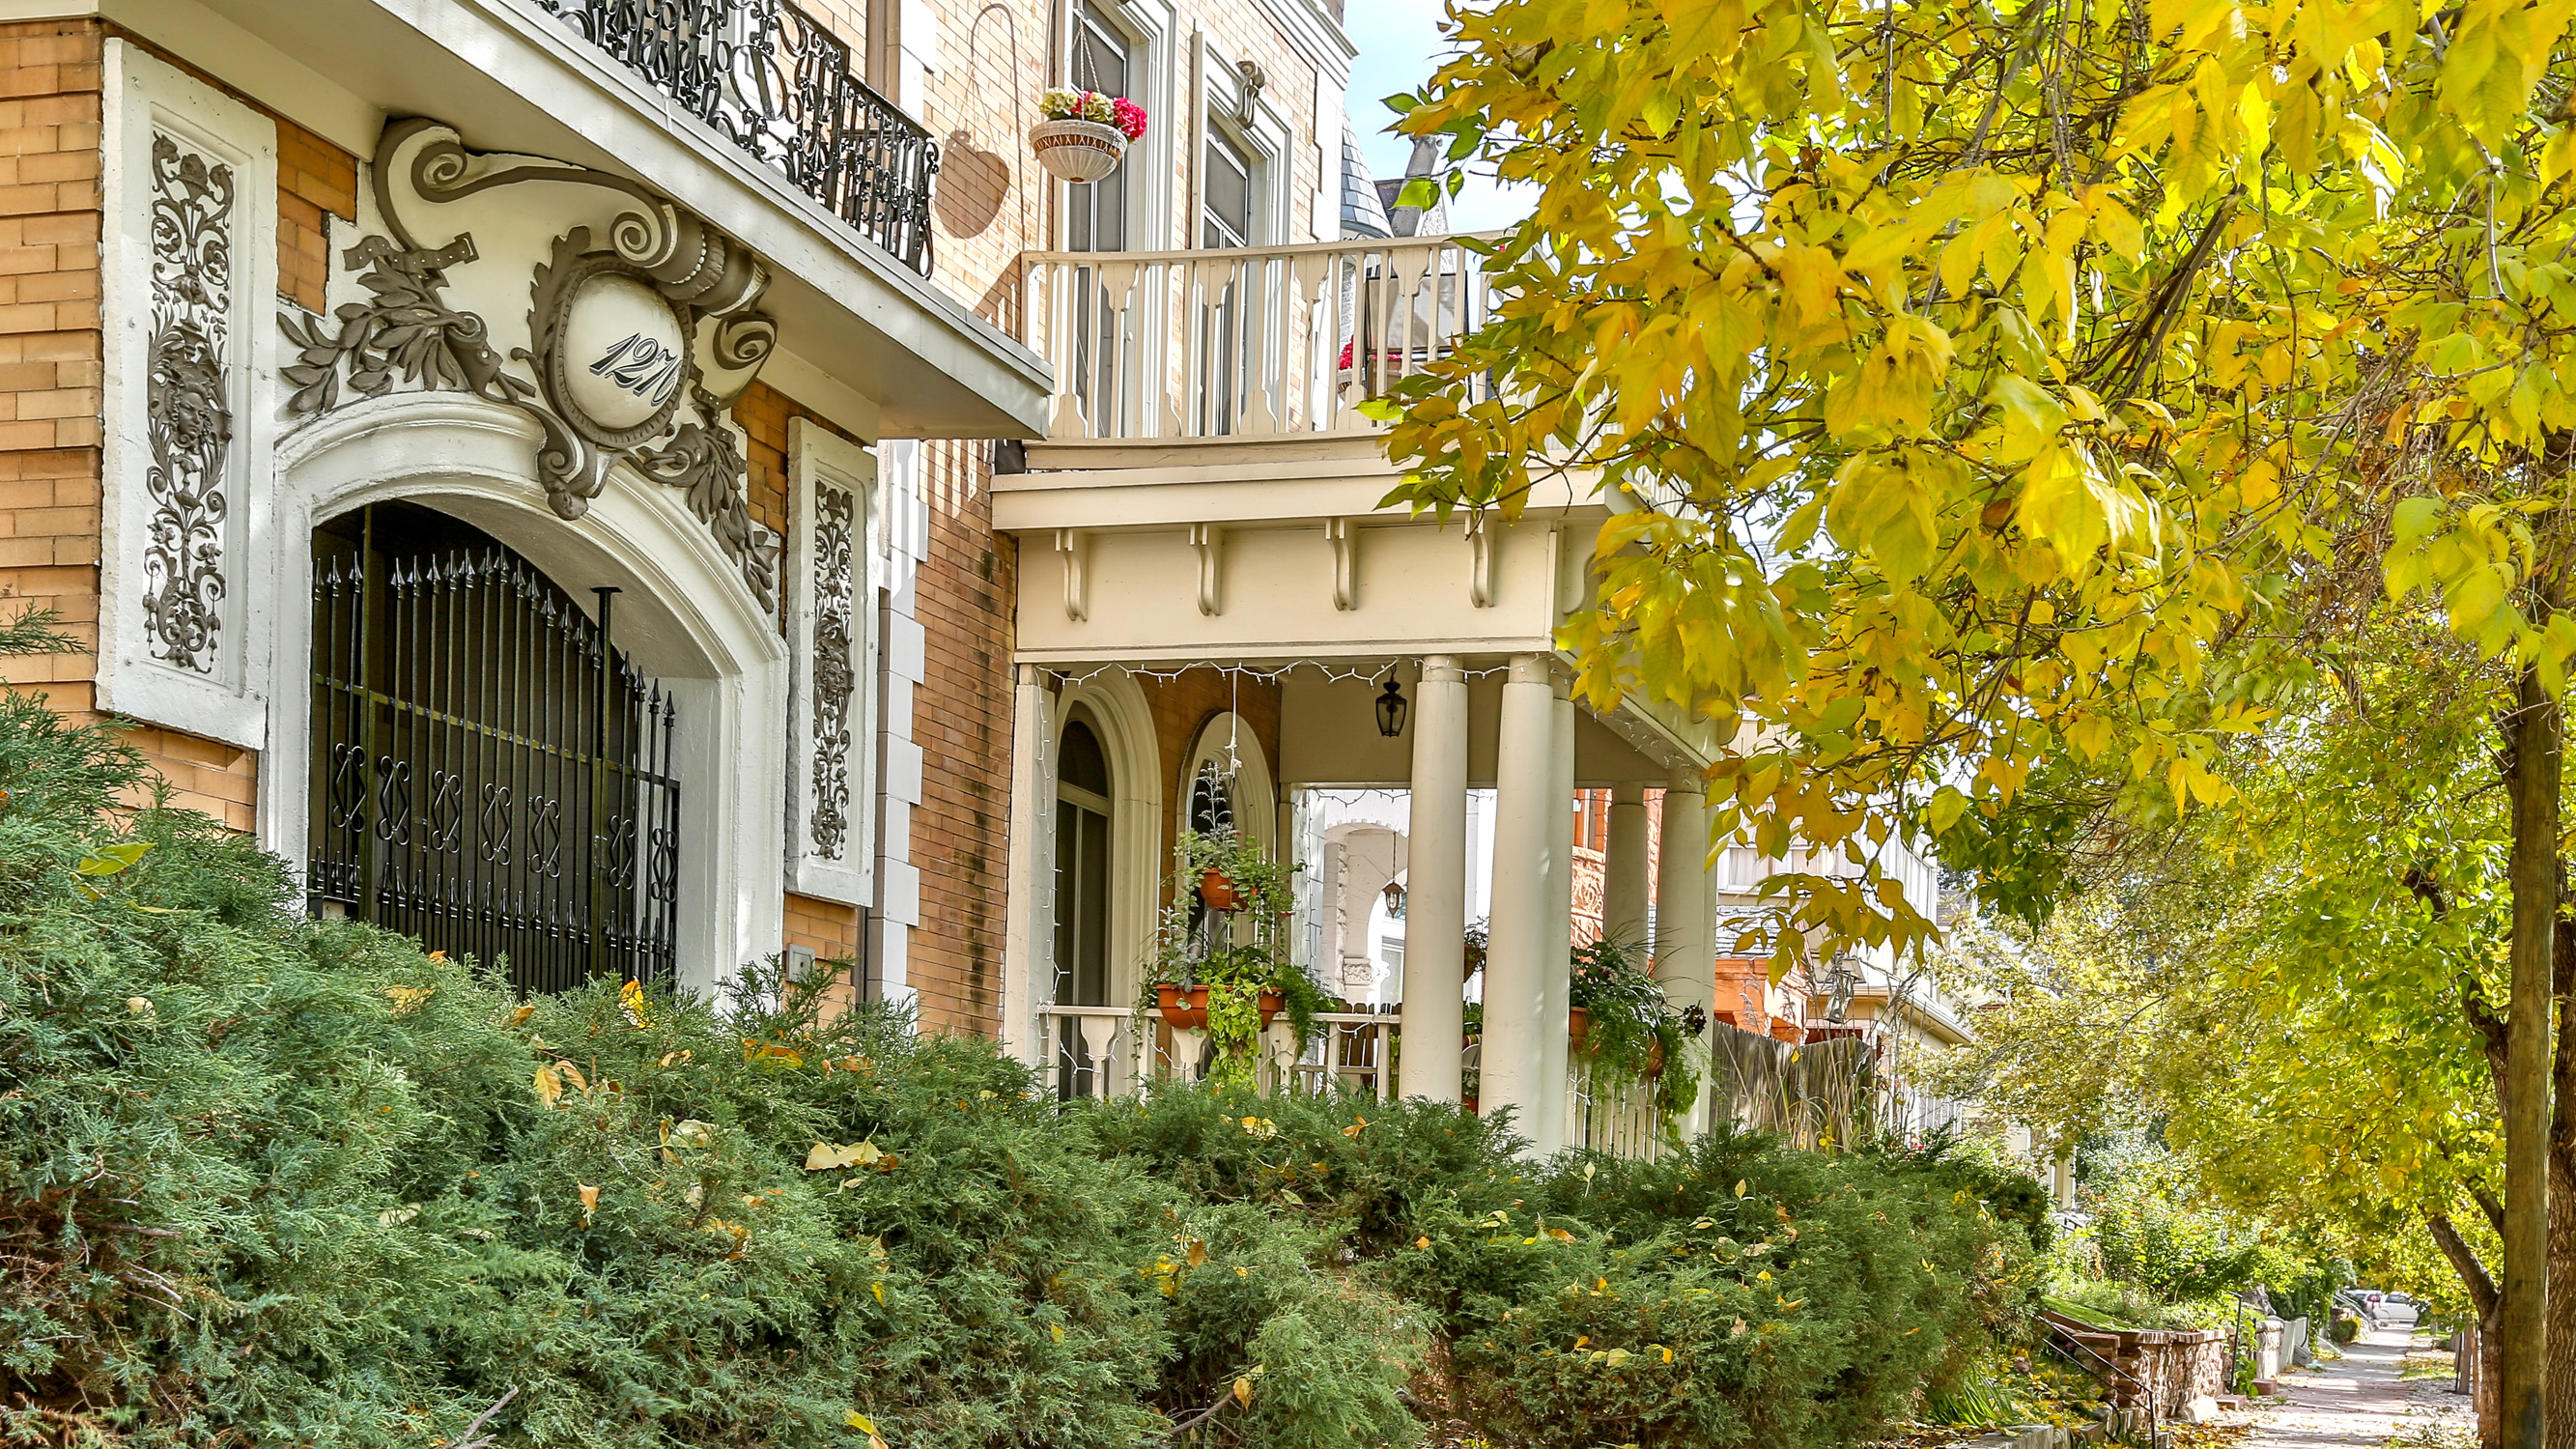 HISTORIC ELMAR CONDO IN CAPITAL HILL